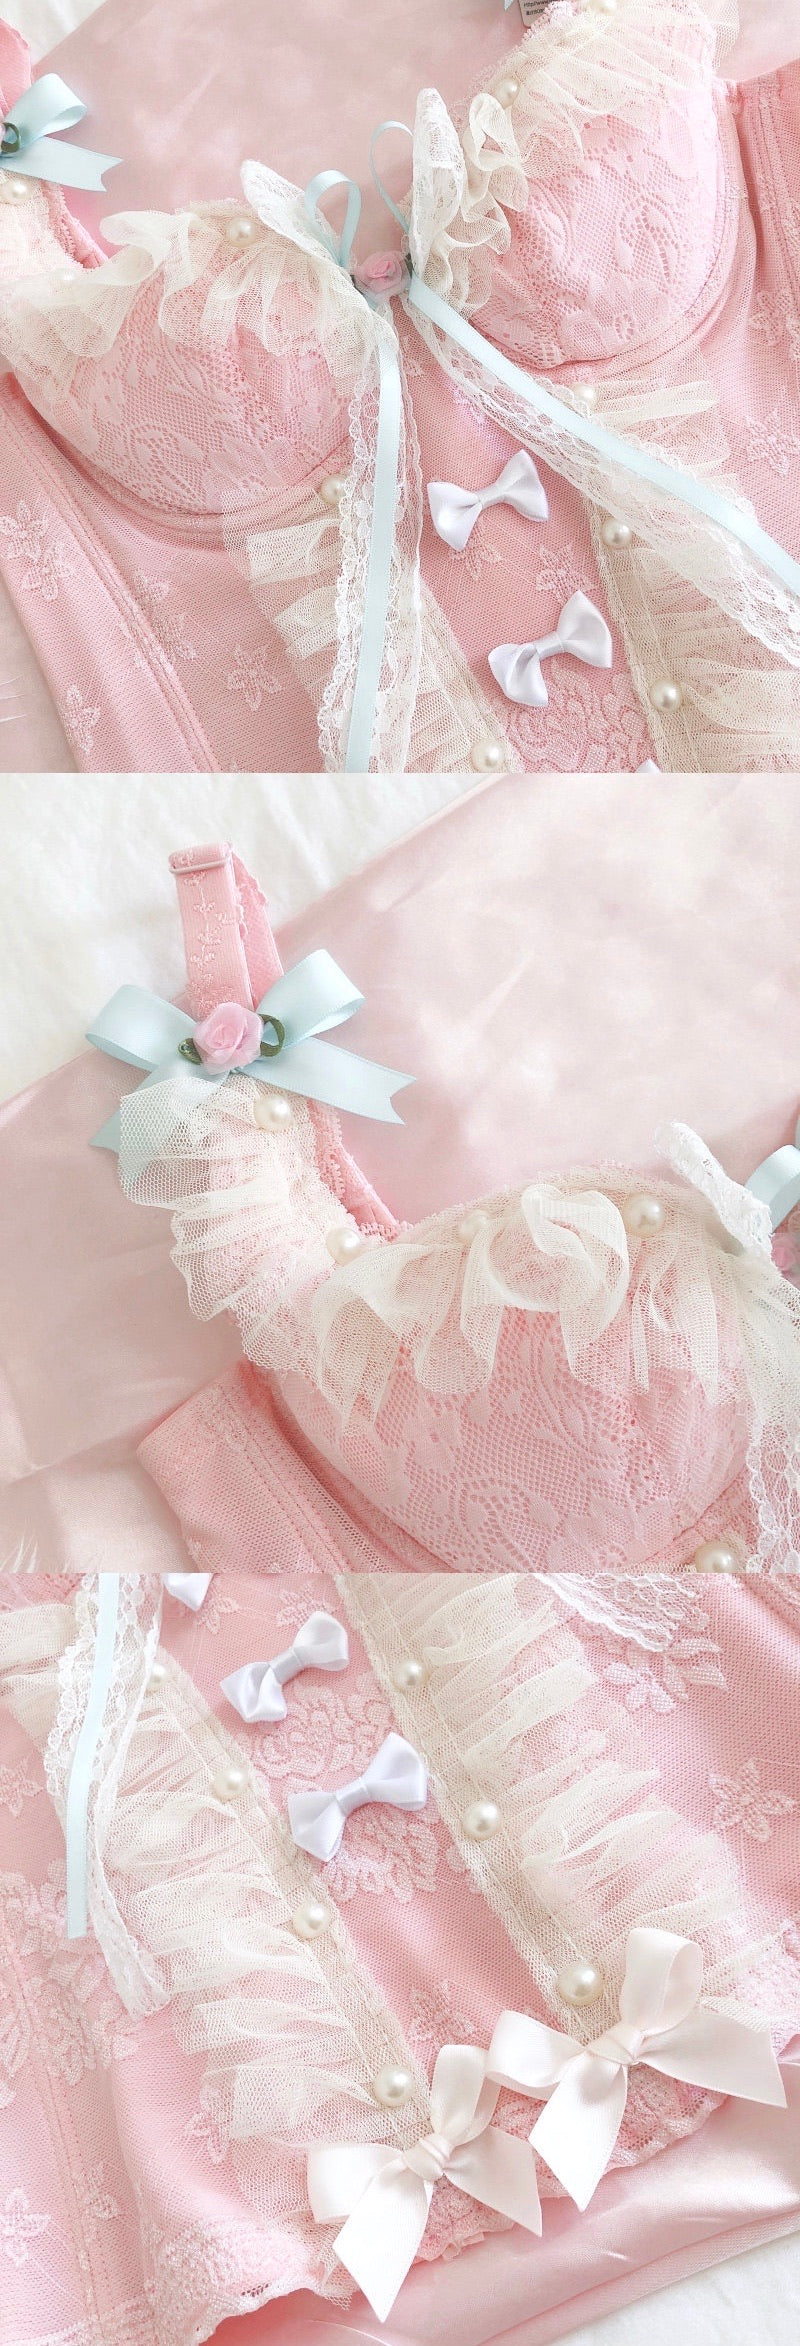 [Only 1 Made] Cloudy Rose Lace Handmade Corset - Peiliee Shop